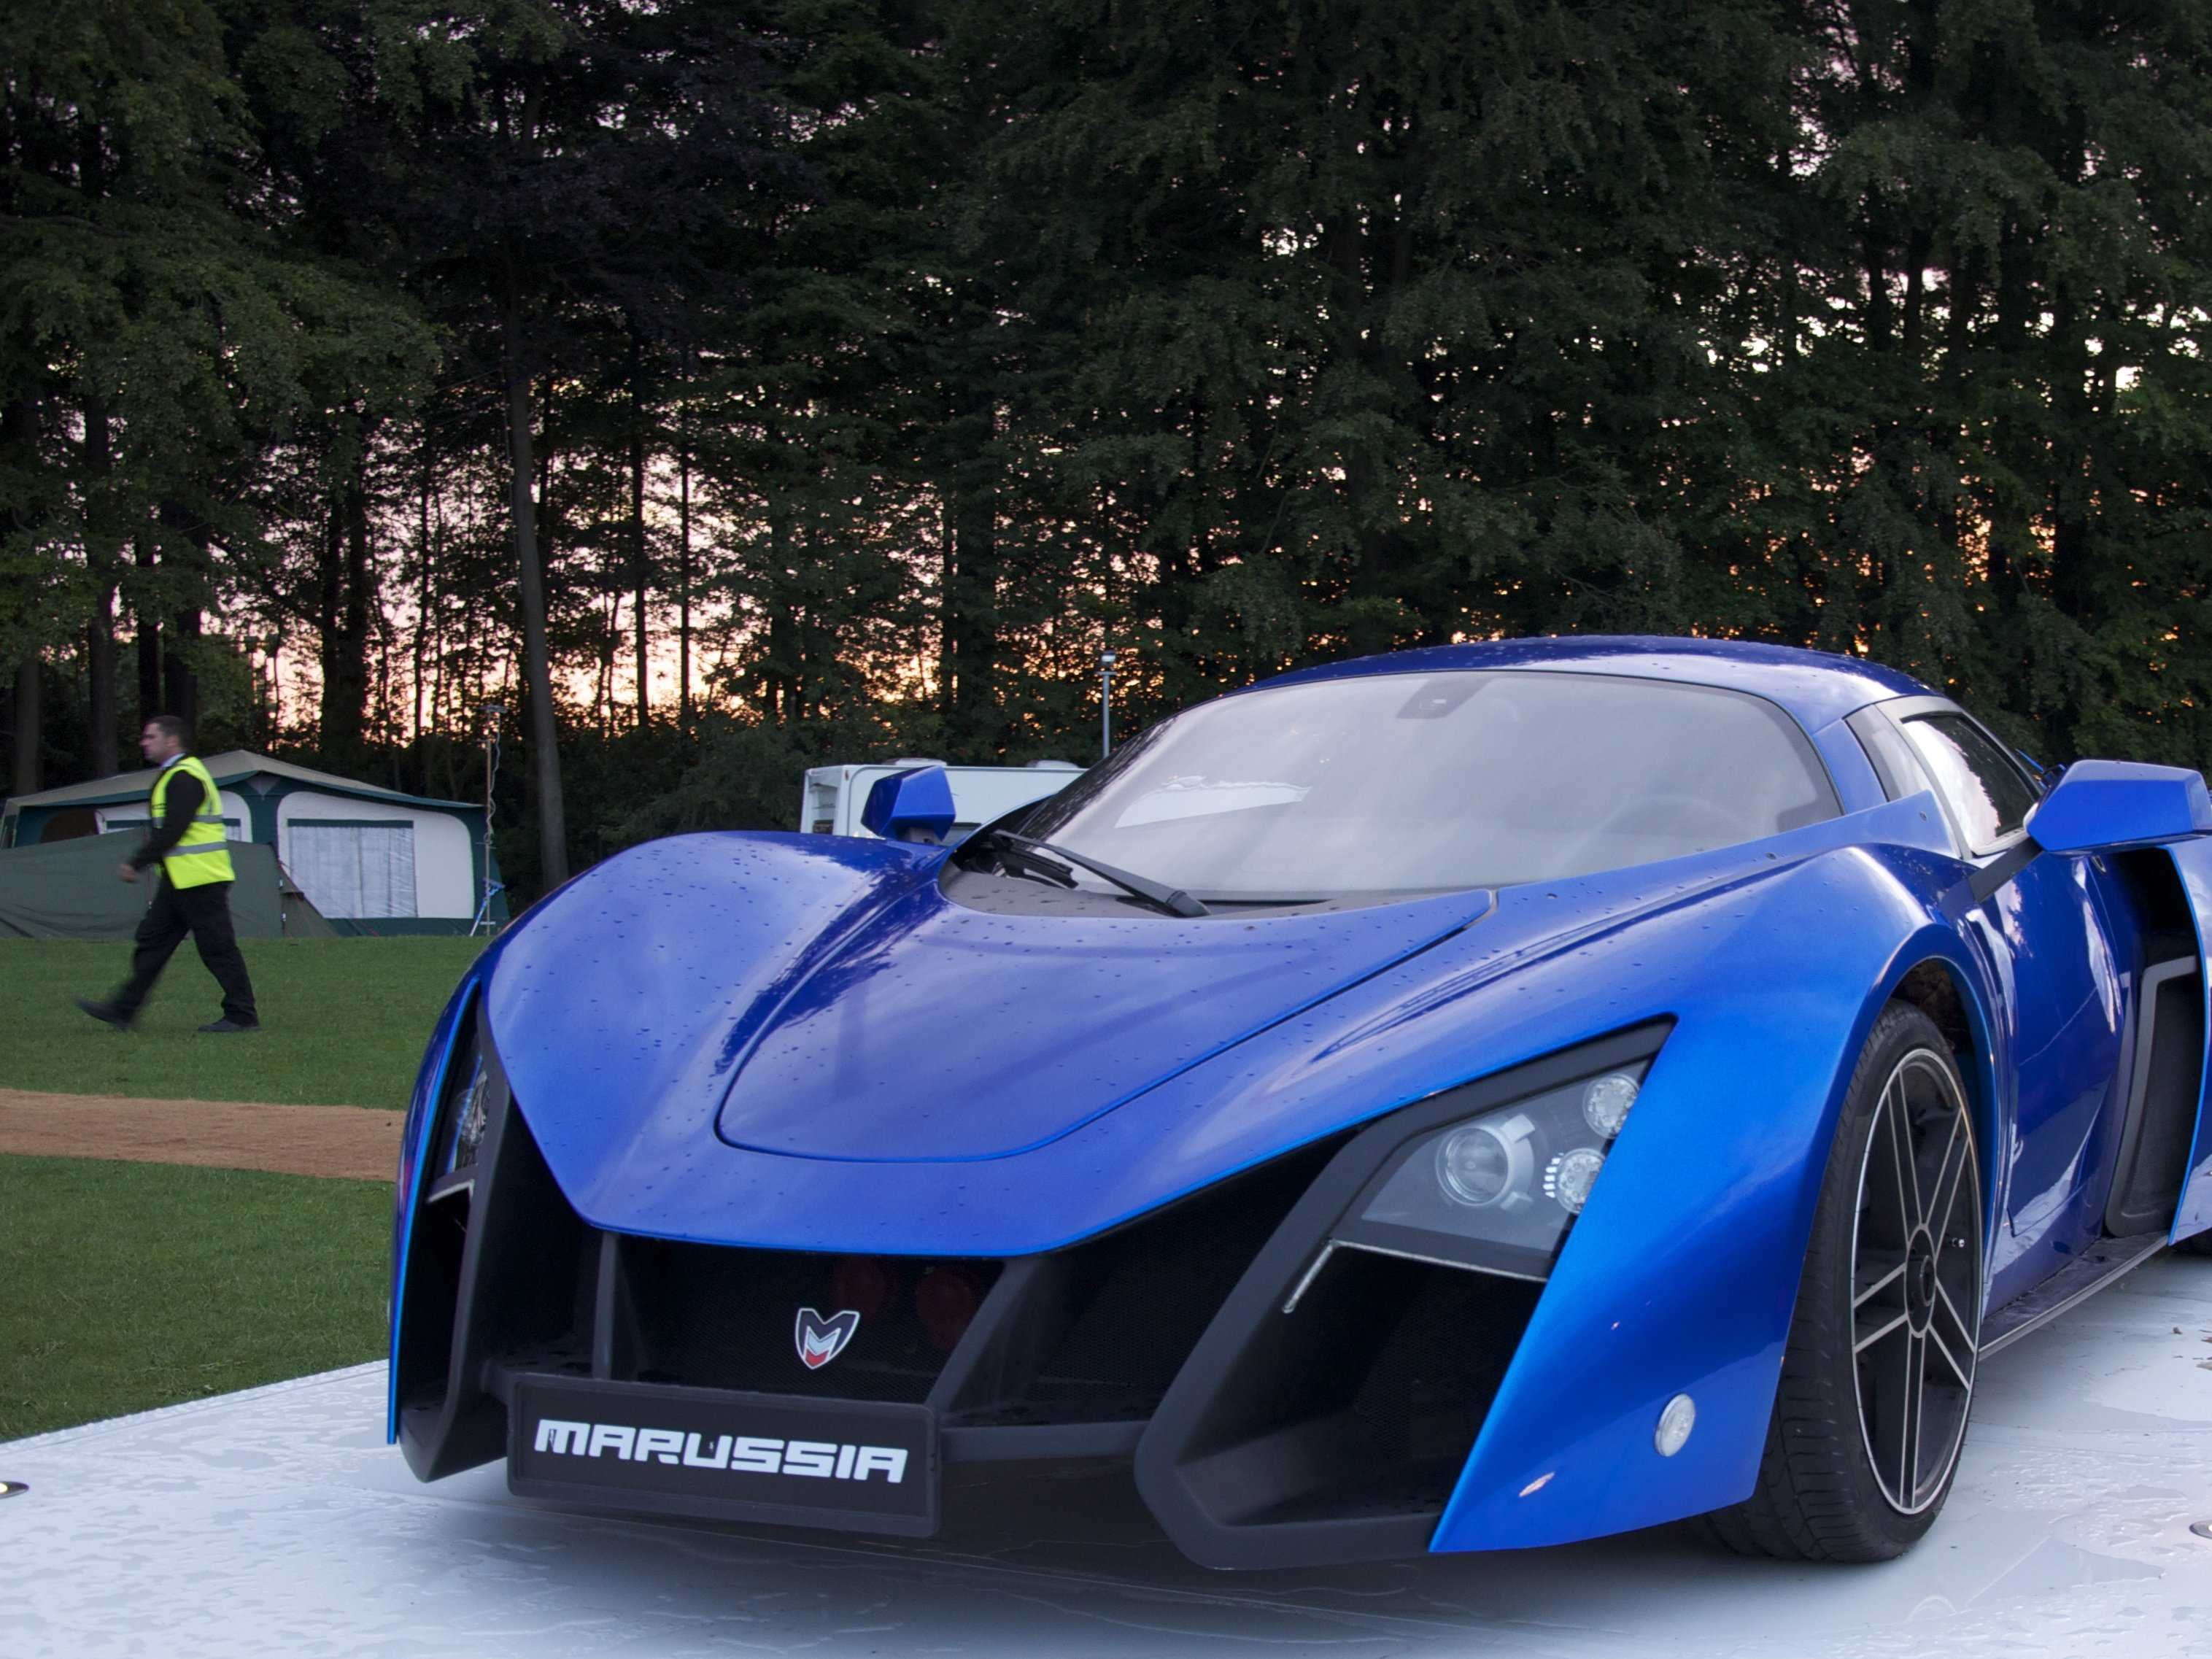 Russia Wants To Produce Its Own Luxury Cars Www Bullfax Com